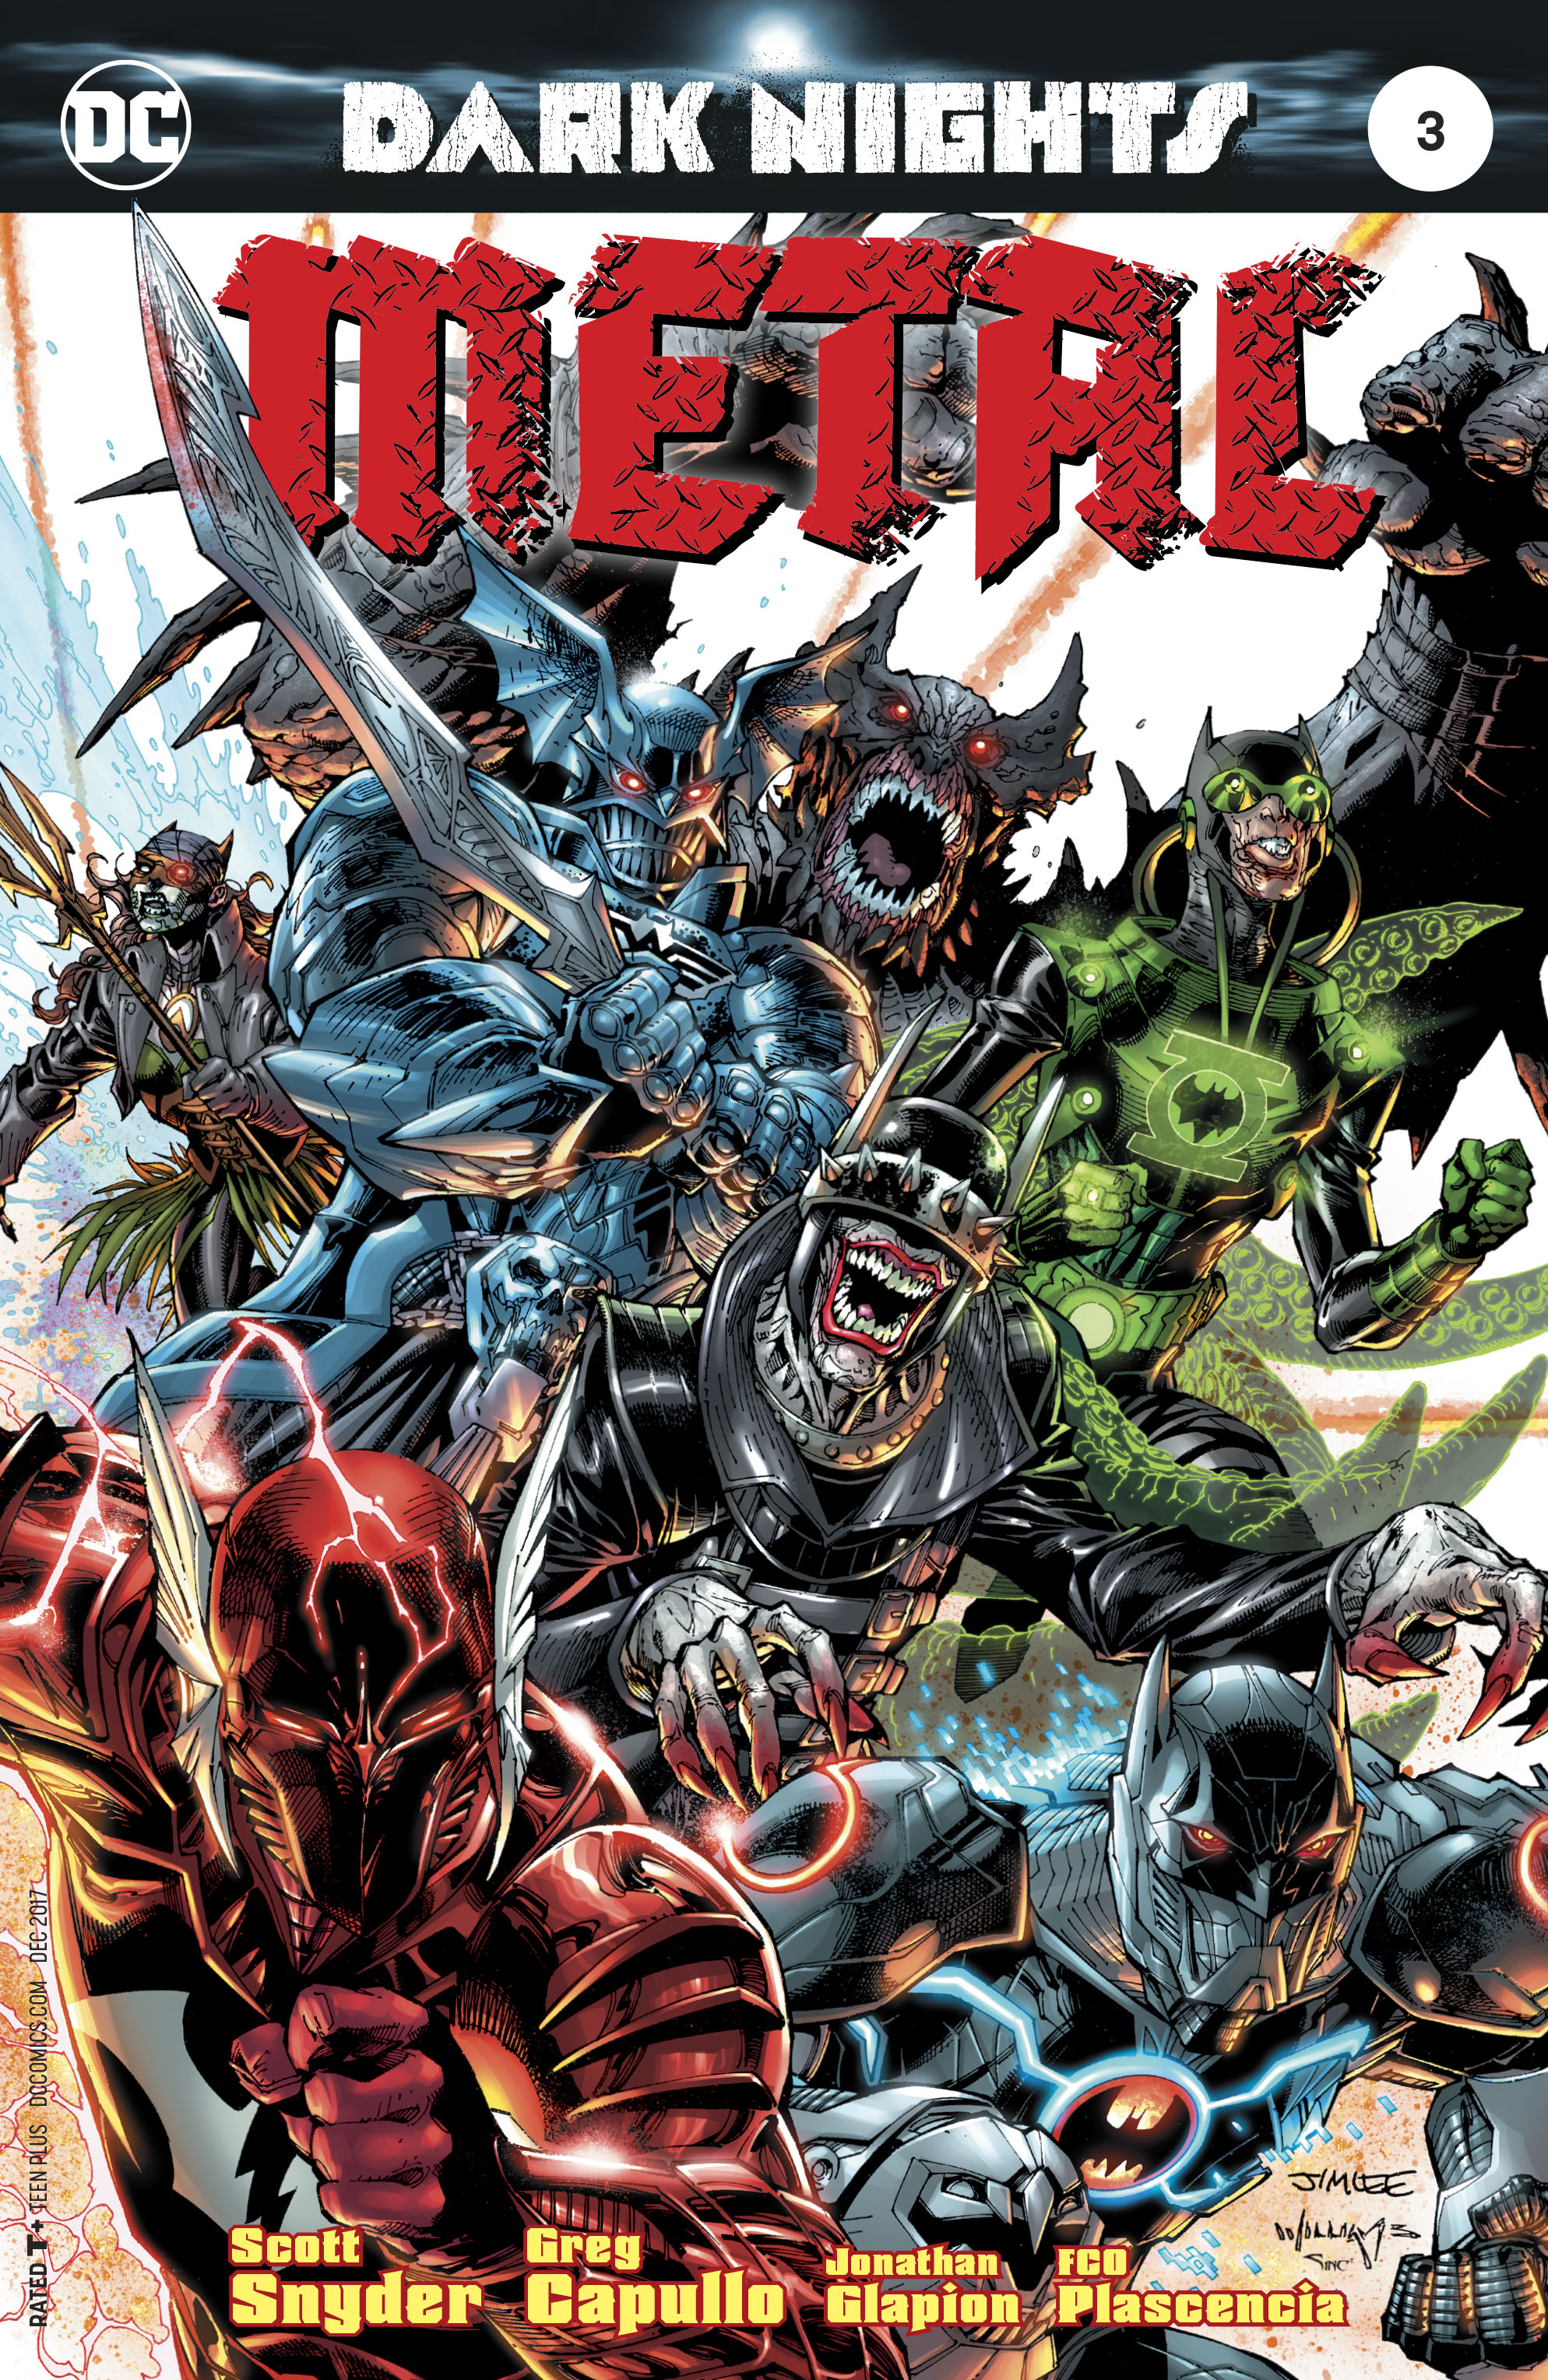 DARK NIGHTS METAL #3